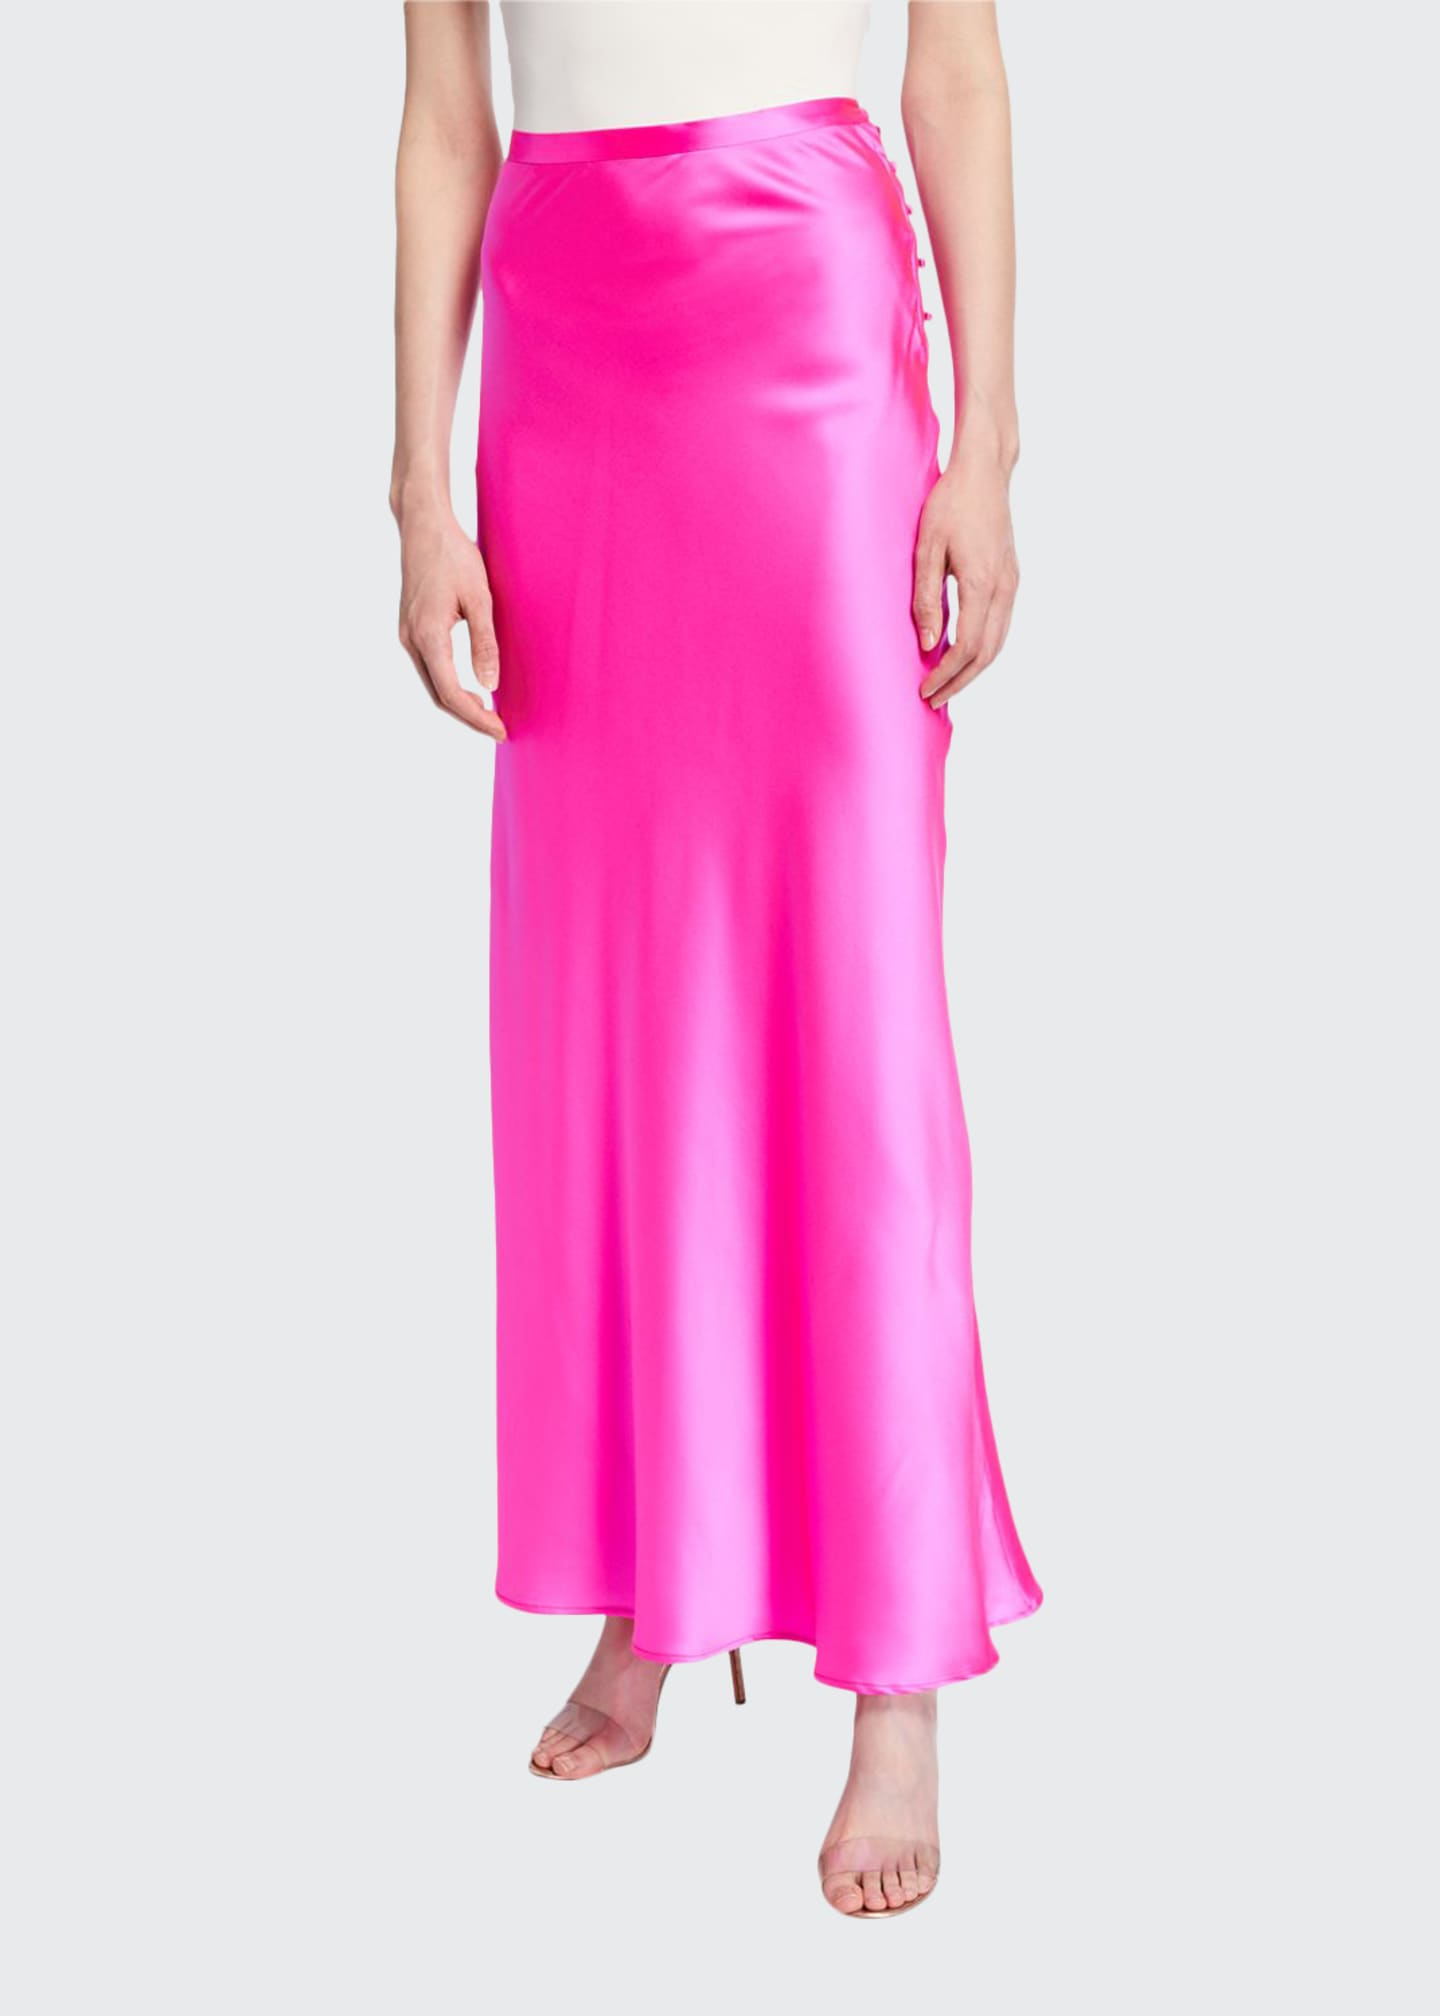 Florence Silk Satin Bias-Cut Ankle-Length Skirt, Pink